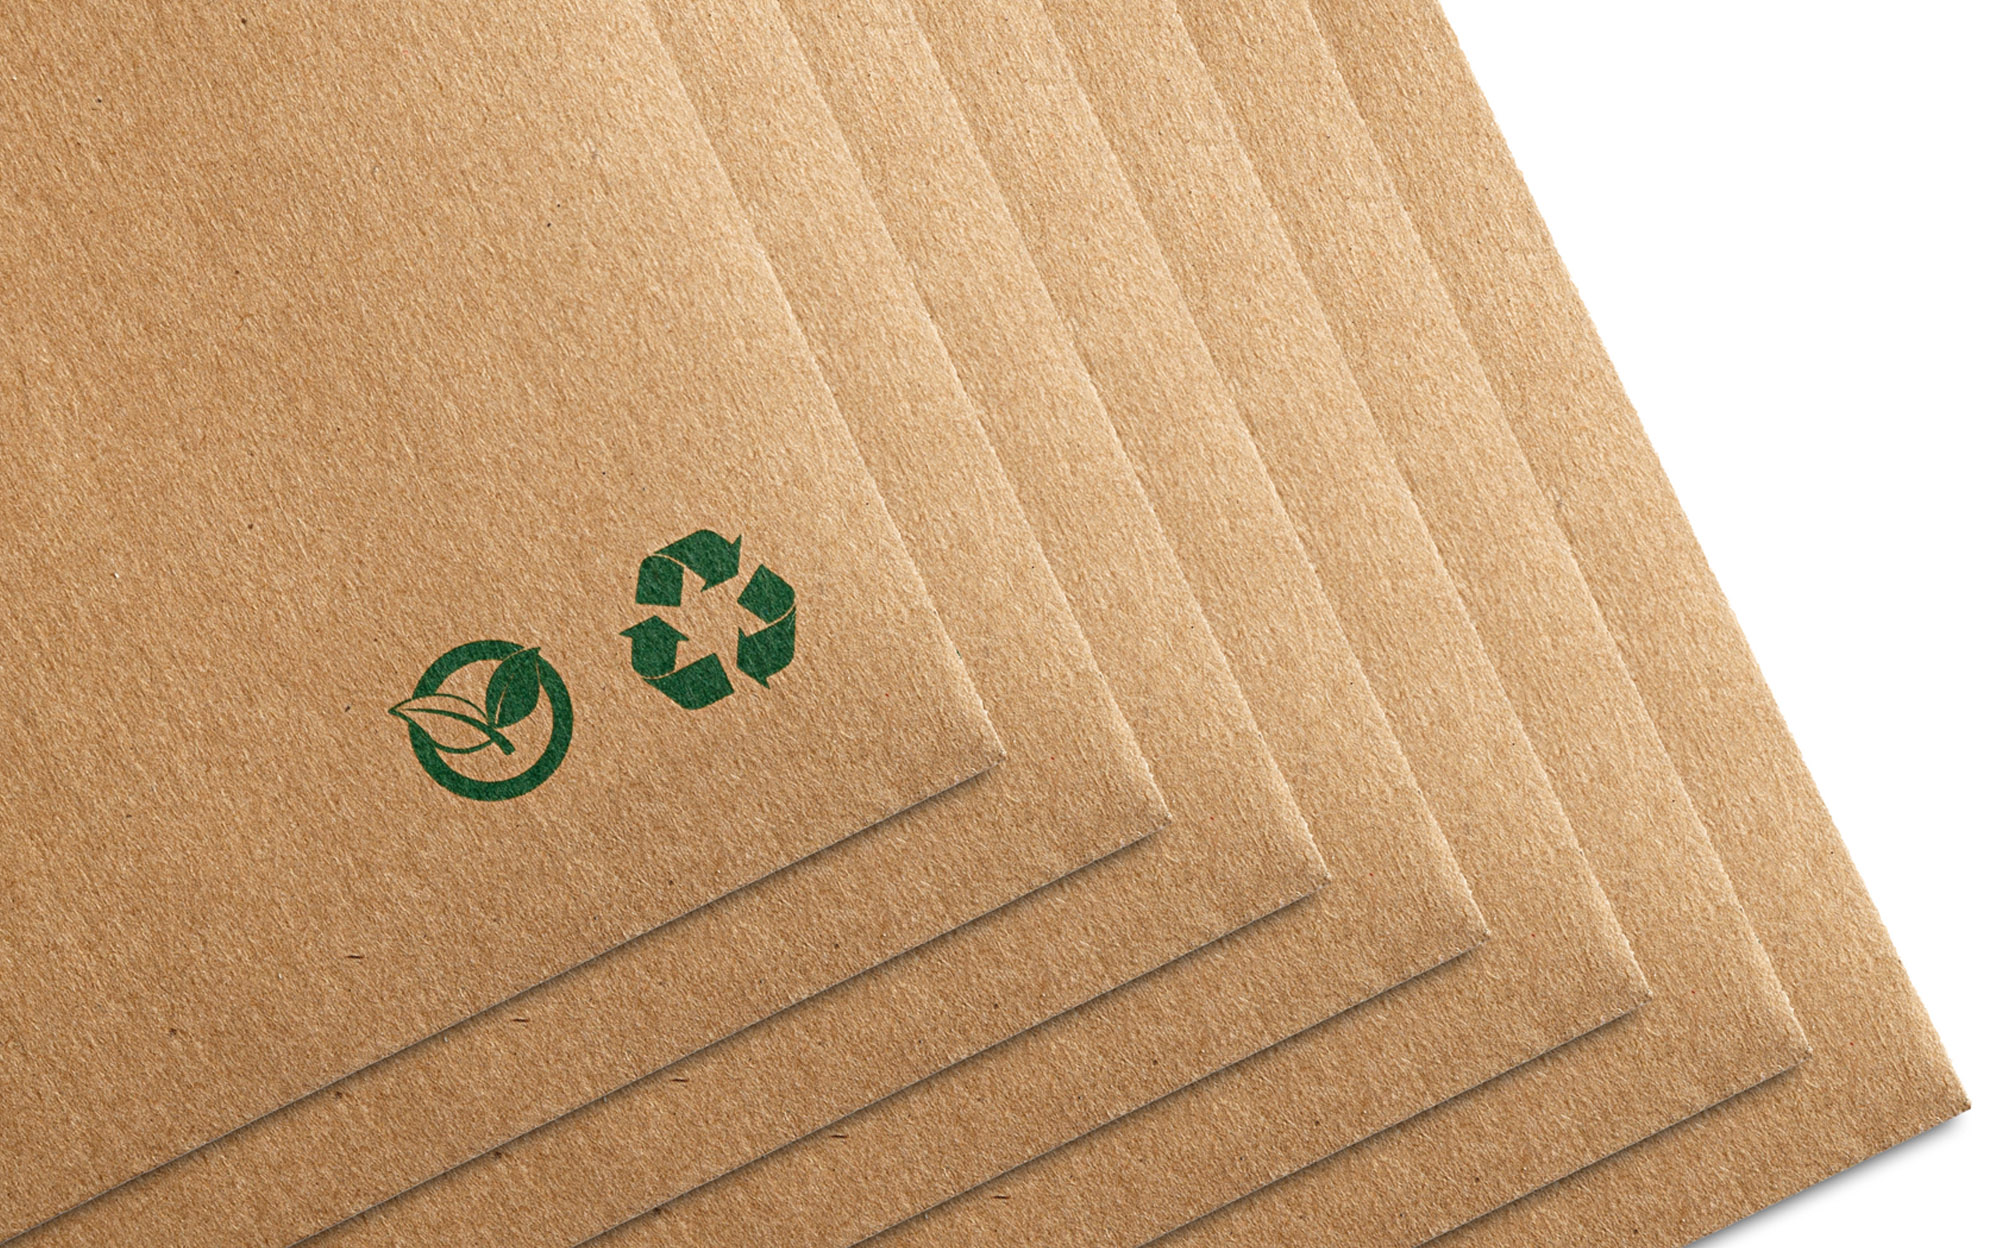 How to make your direct mail environmentally friendly